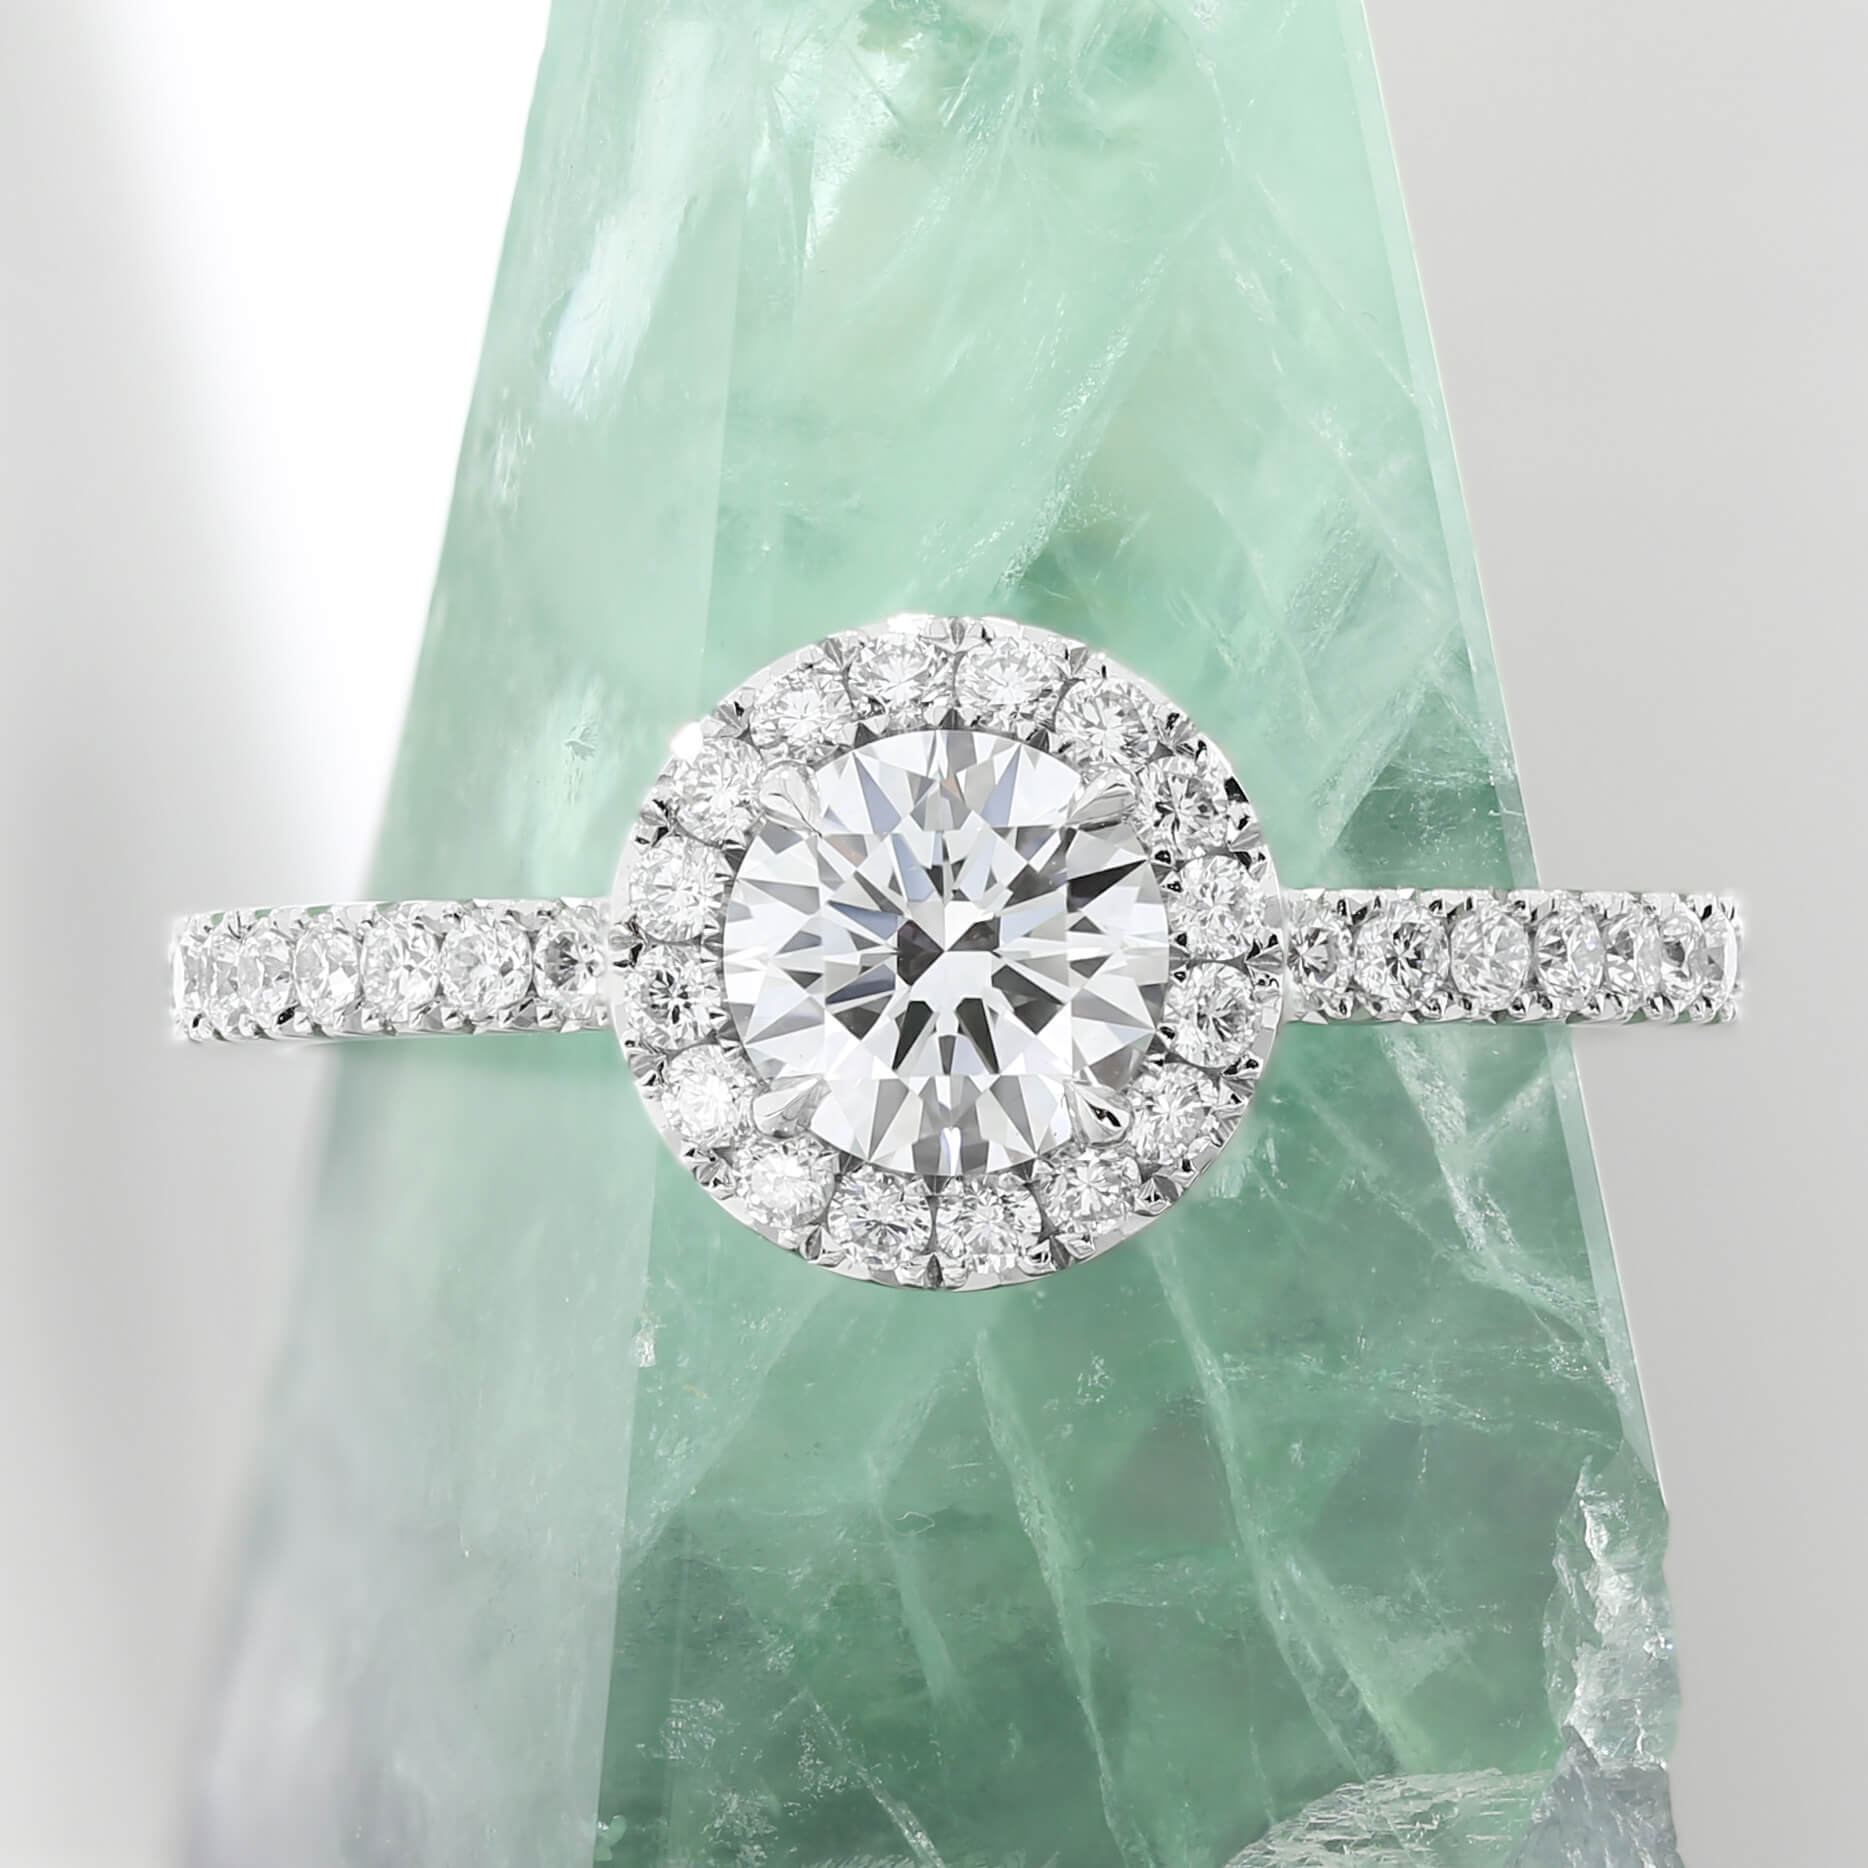 18073-0.75ct-RBC-fishtail-halo-diamond-spider-4-Edit.jpg